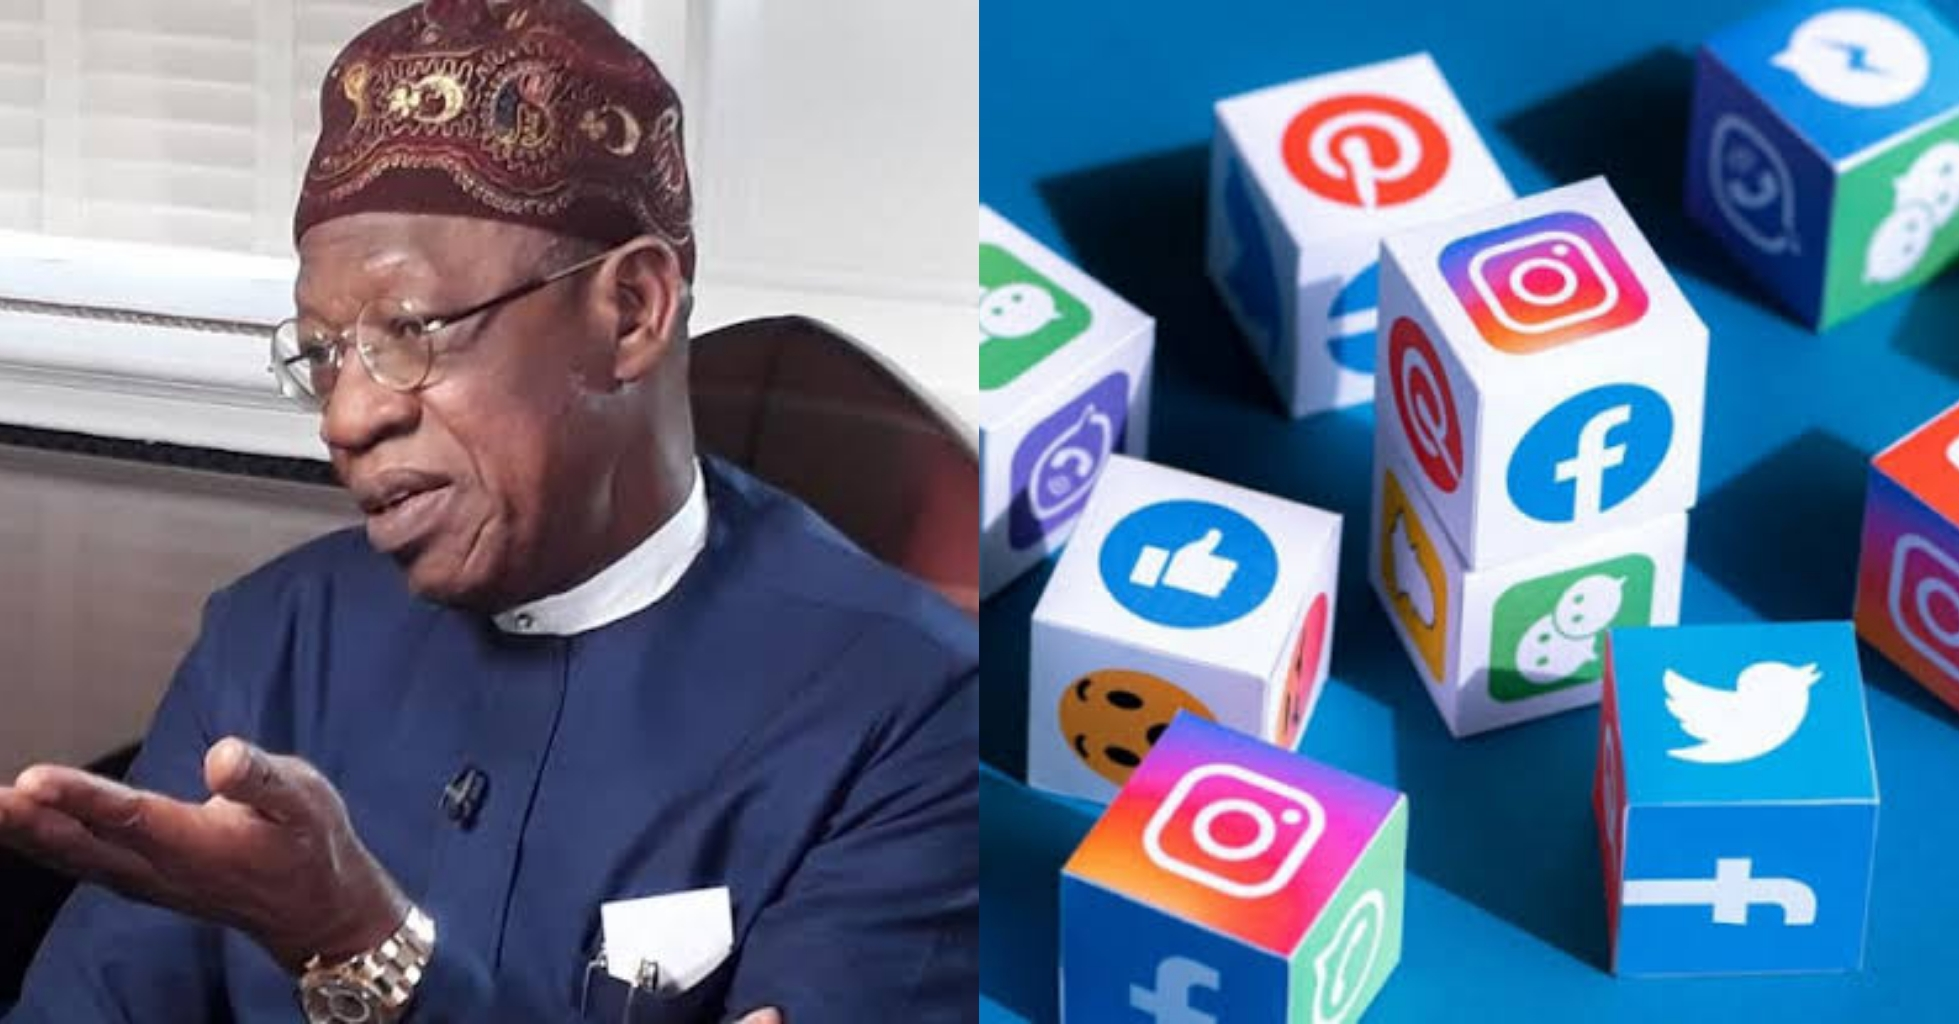 Buhari-led government has respect for free press: Lai Mohammed